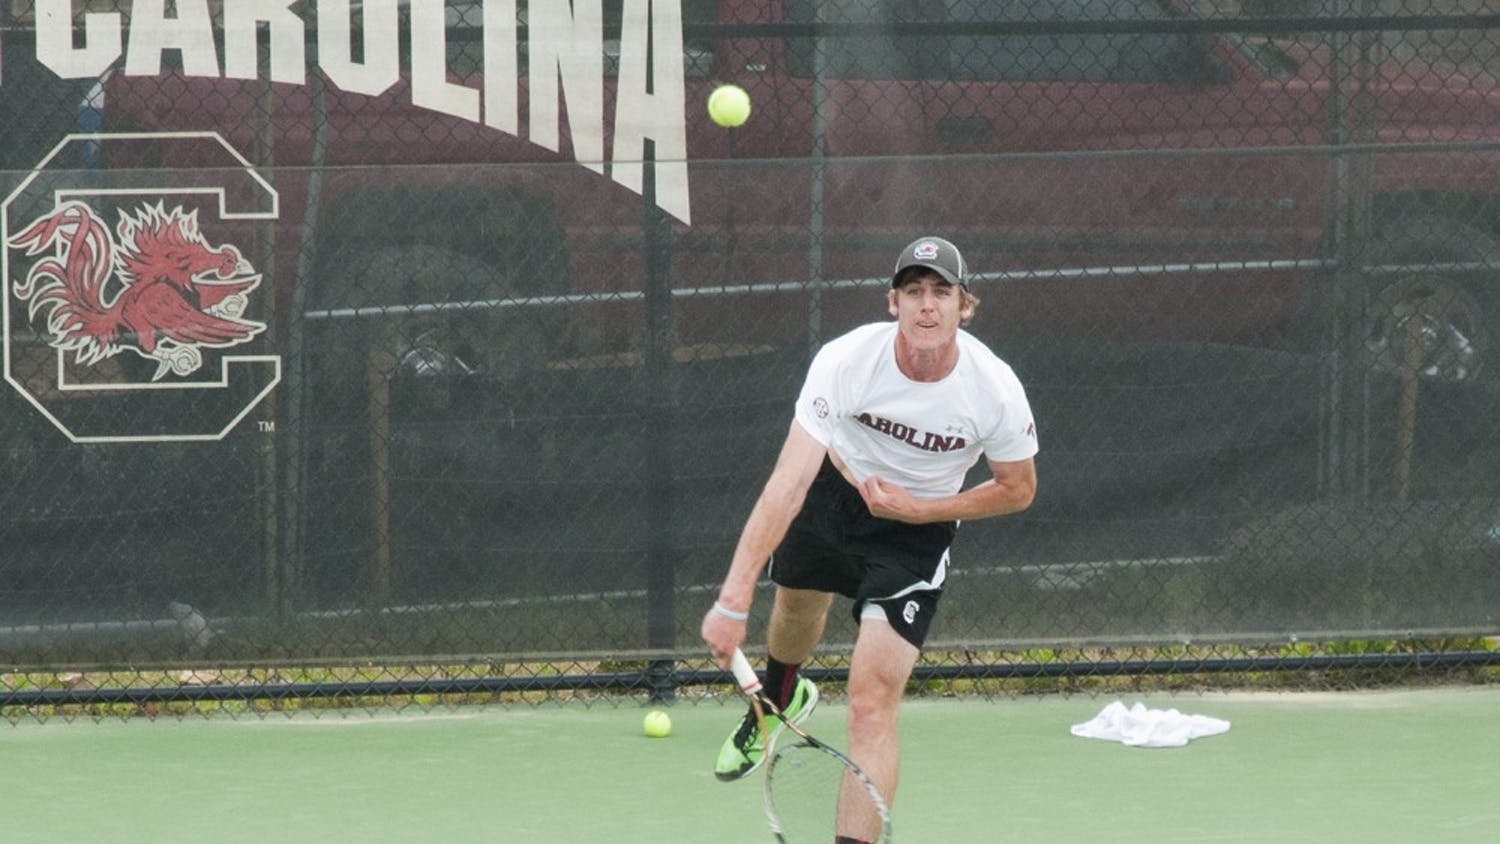 Senior Harry Menzies won his third singles match in conference play against LSU.